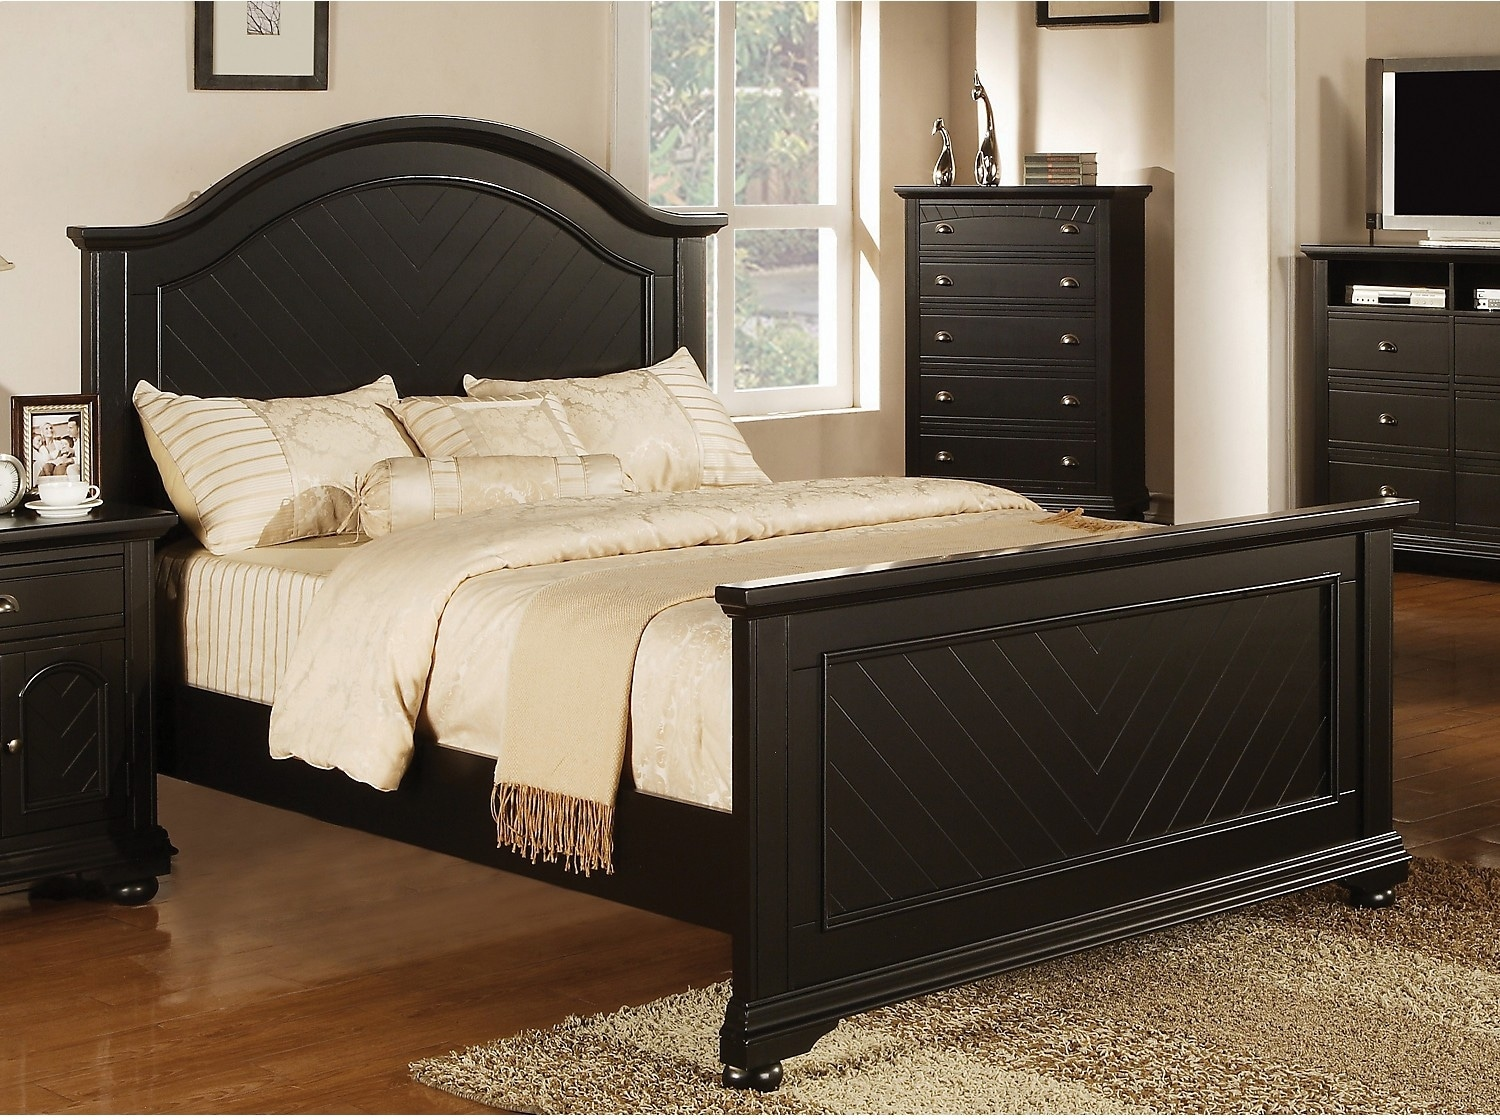 Bedroom Furniture - Brook Black Queen Bed